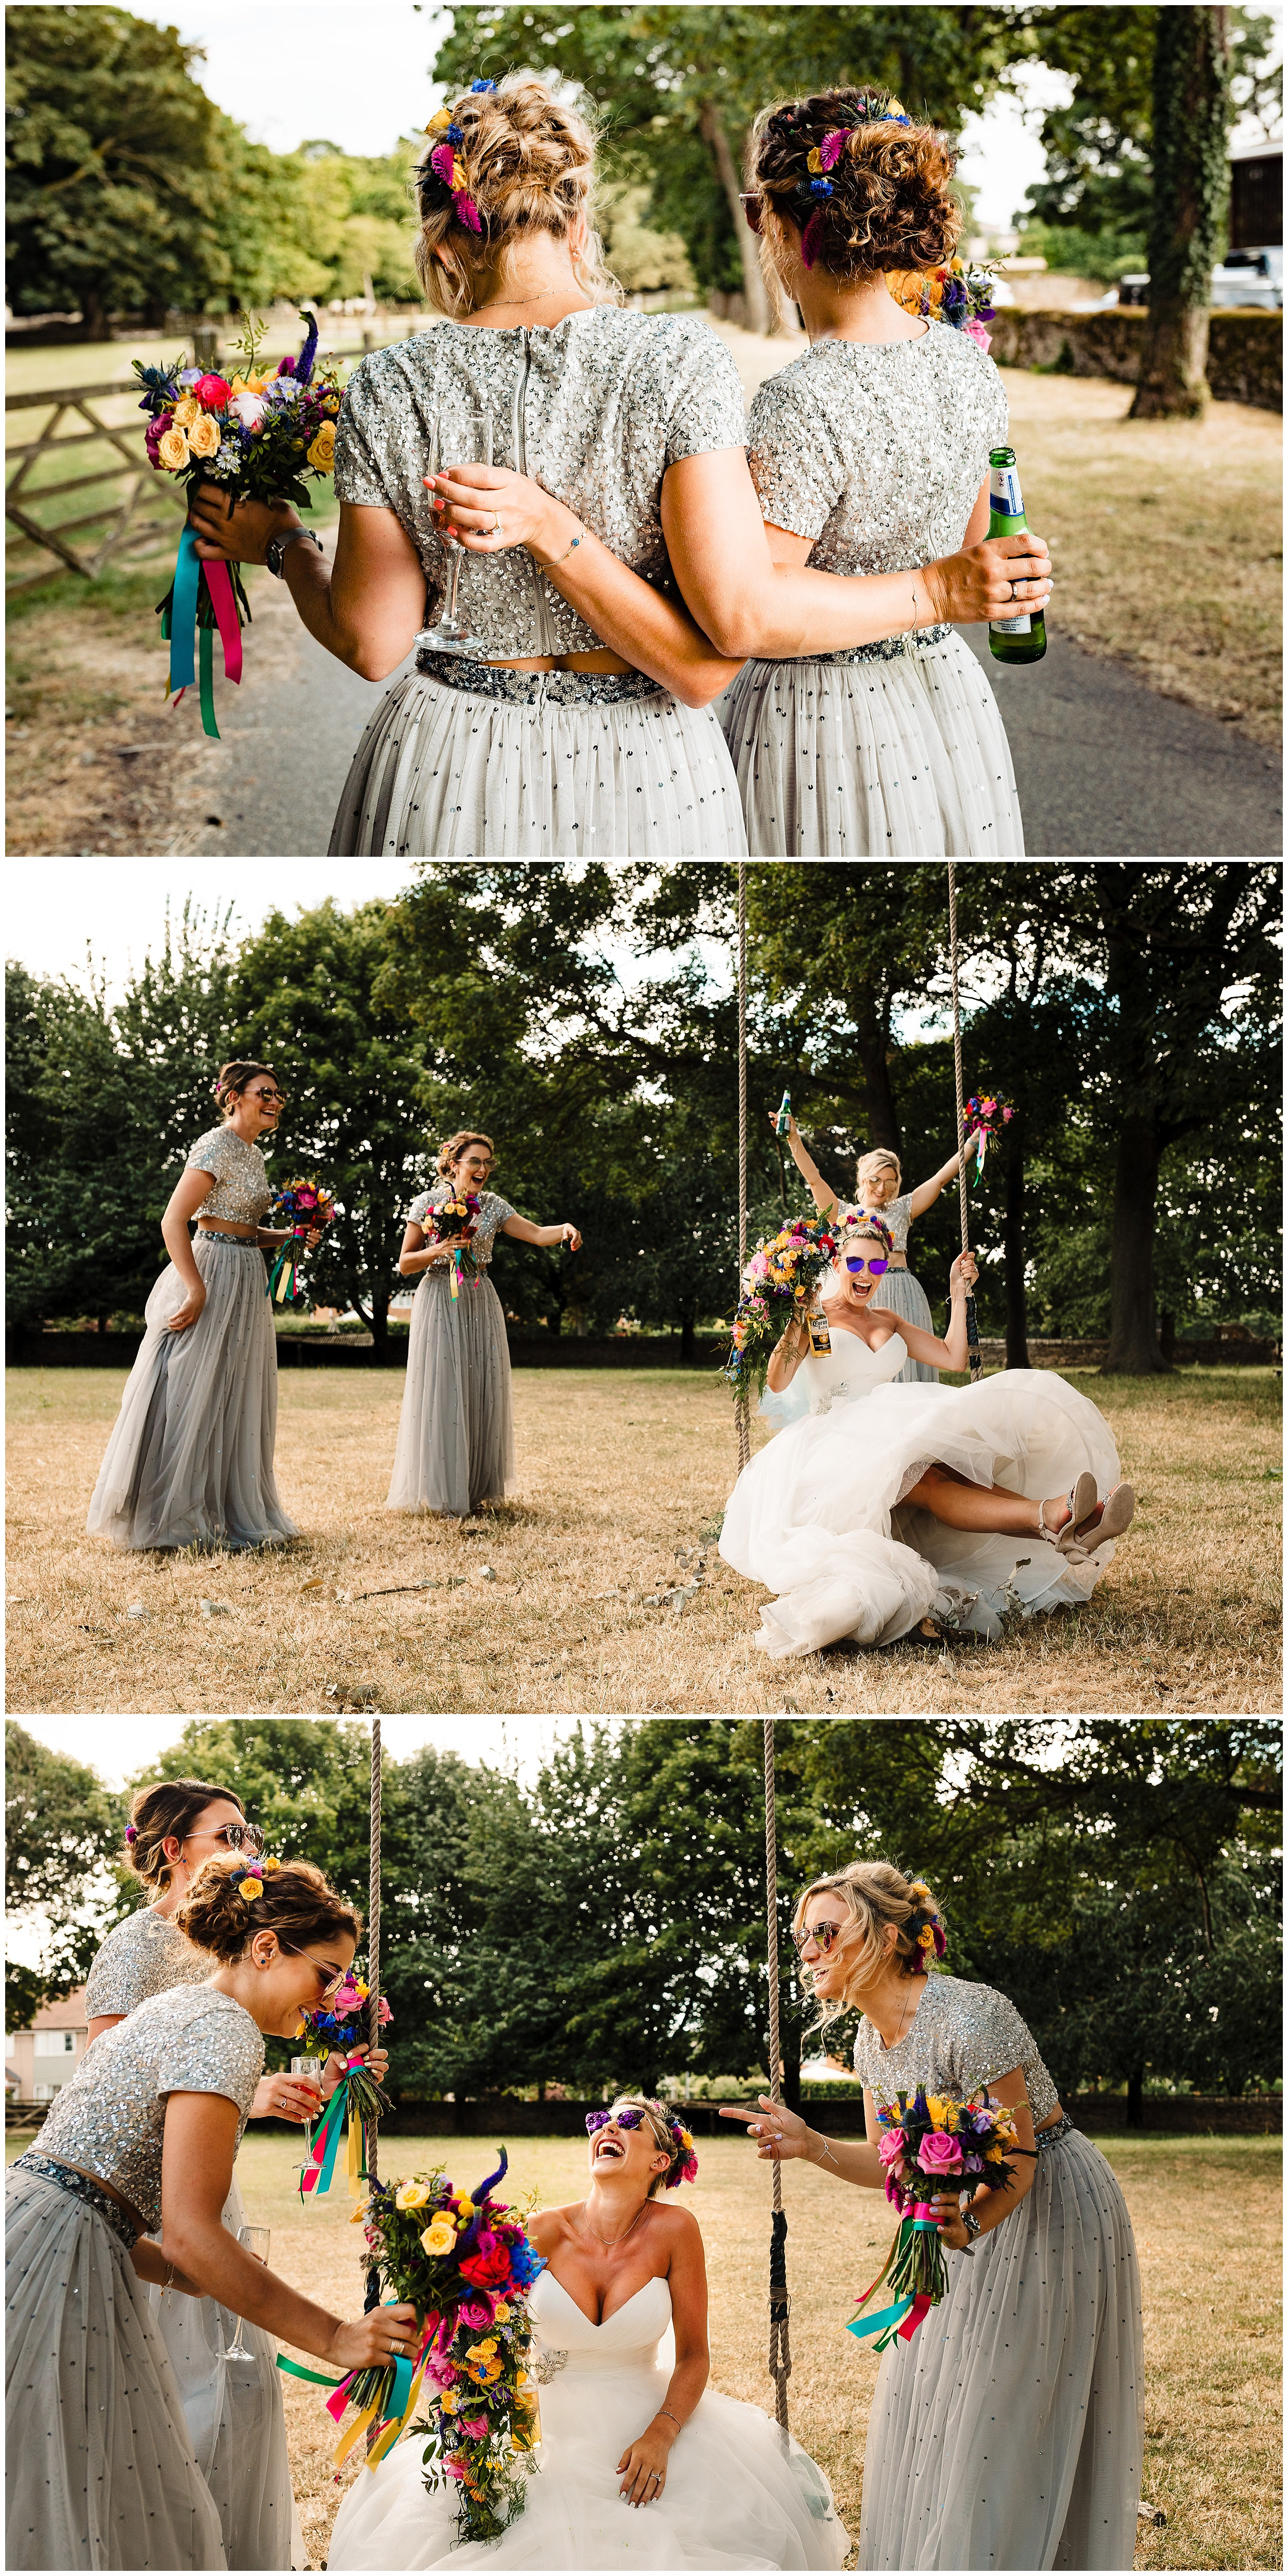 A bride and her bridesmaids having fun on a swing at a wedding in Yorkshire